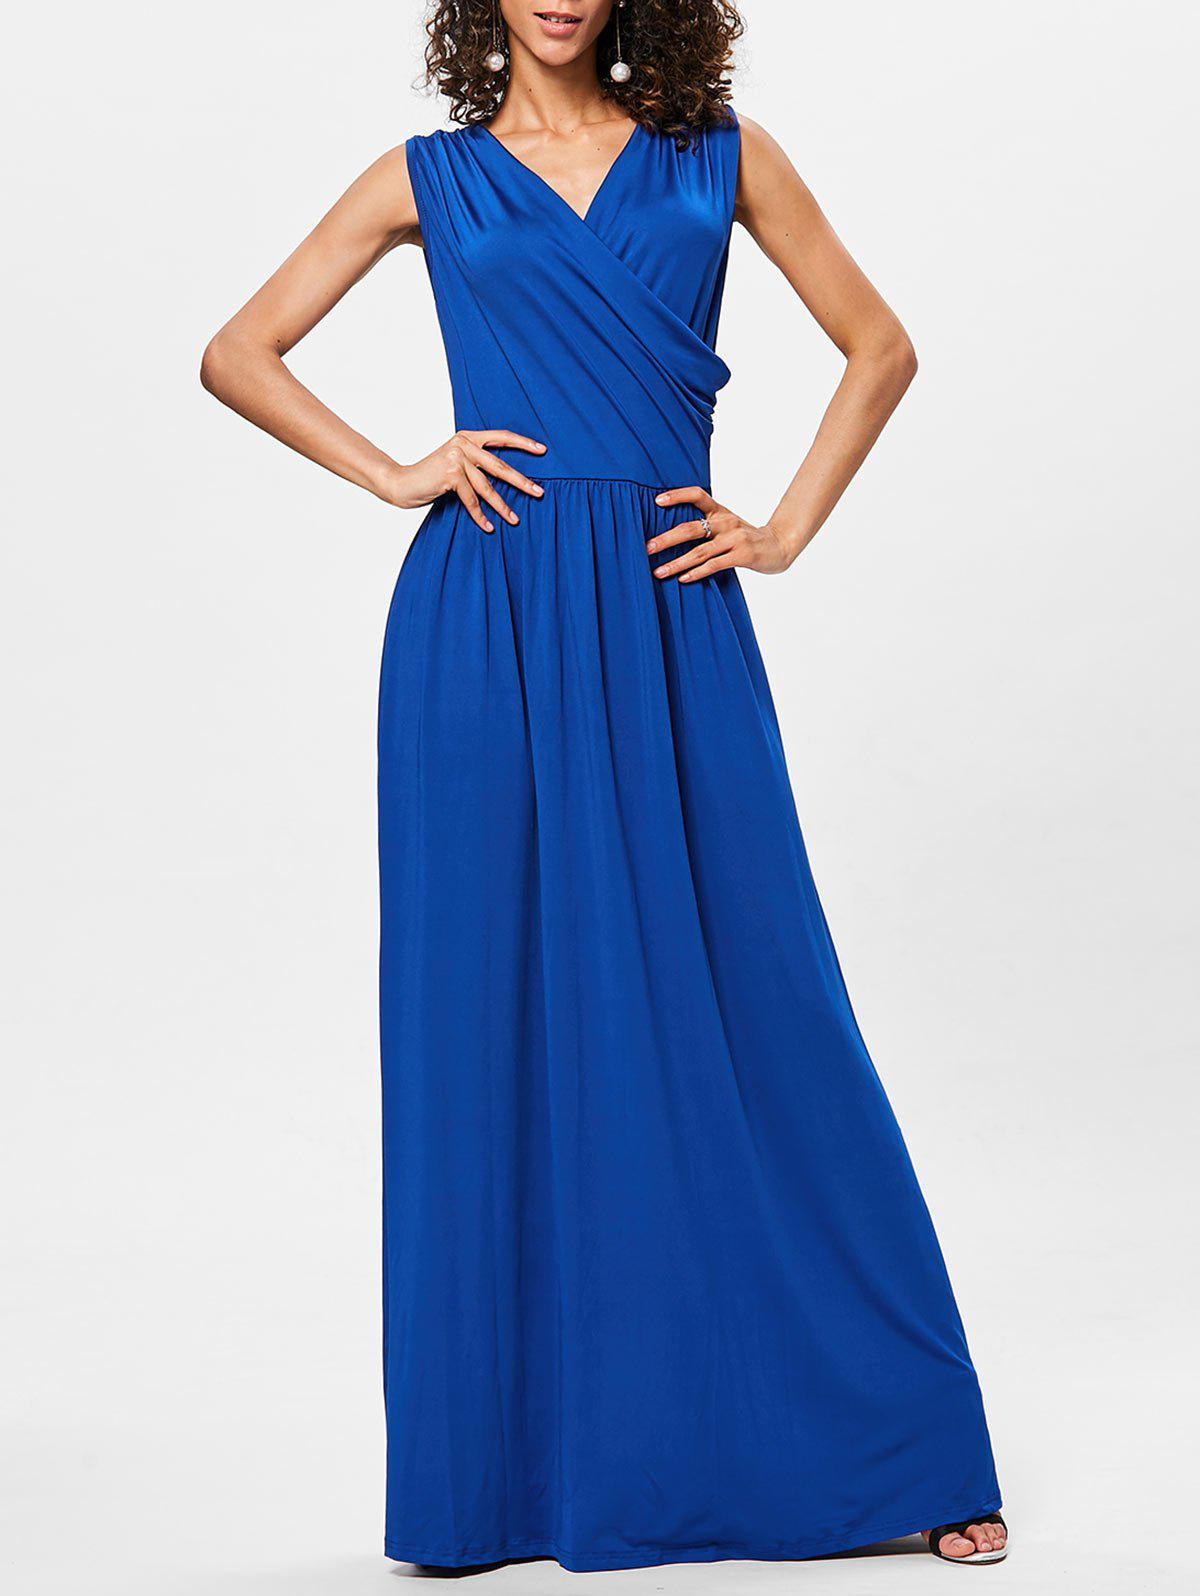 Floor Length V Neck Sleeveless Dress - ROYAL BLUE 2XL